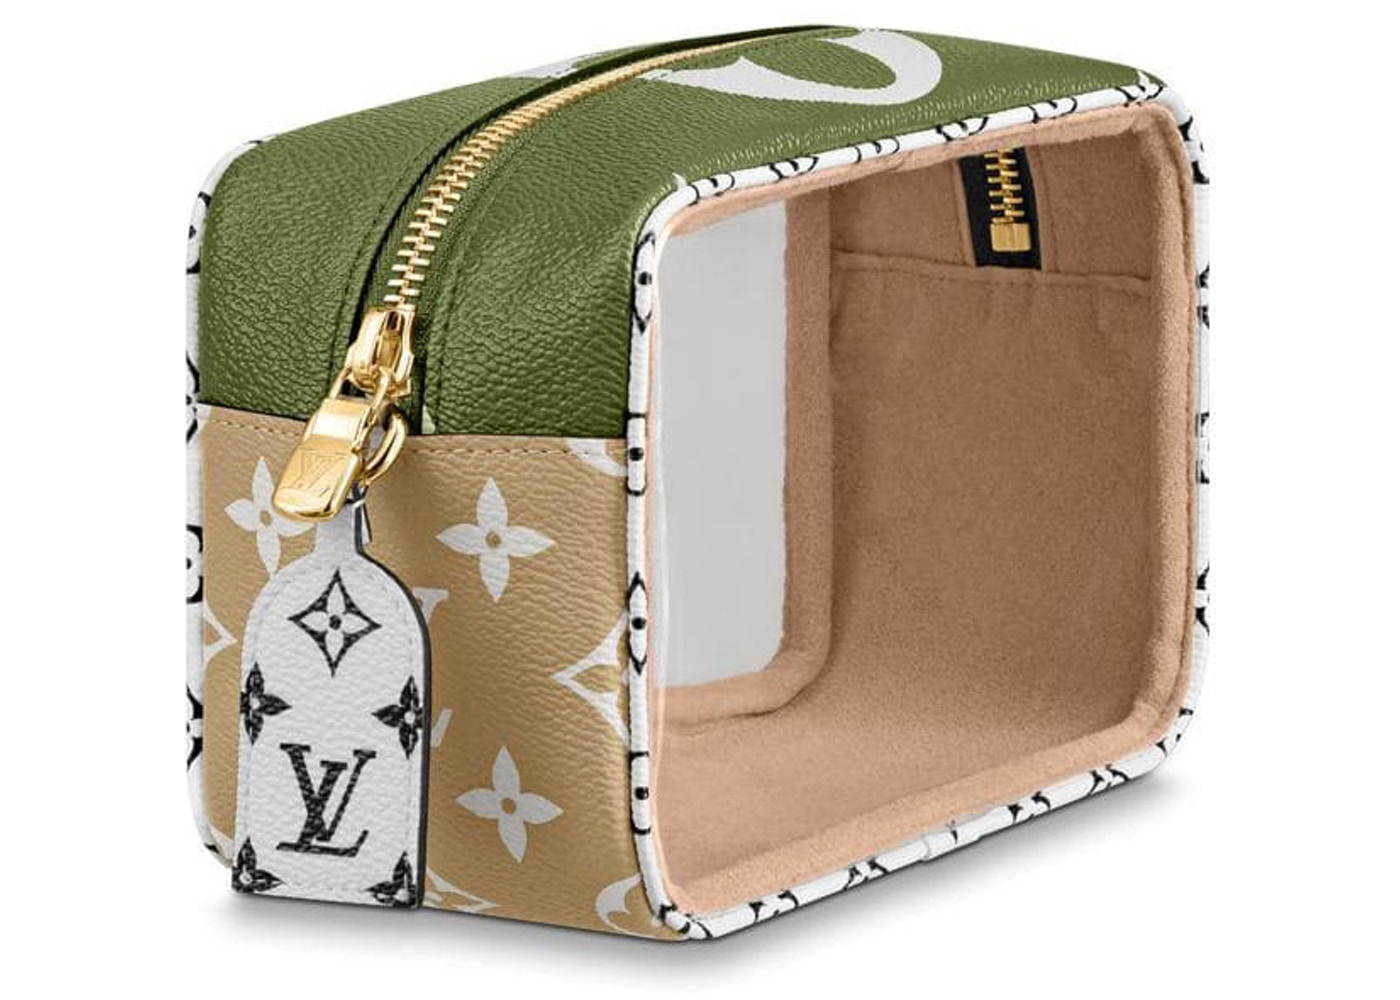 9dc38881c647a Buy   Sell Luxury Handbags - New Lowest Asks